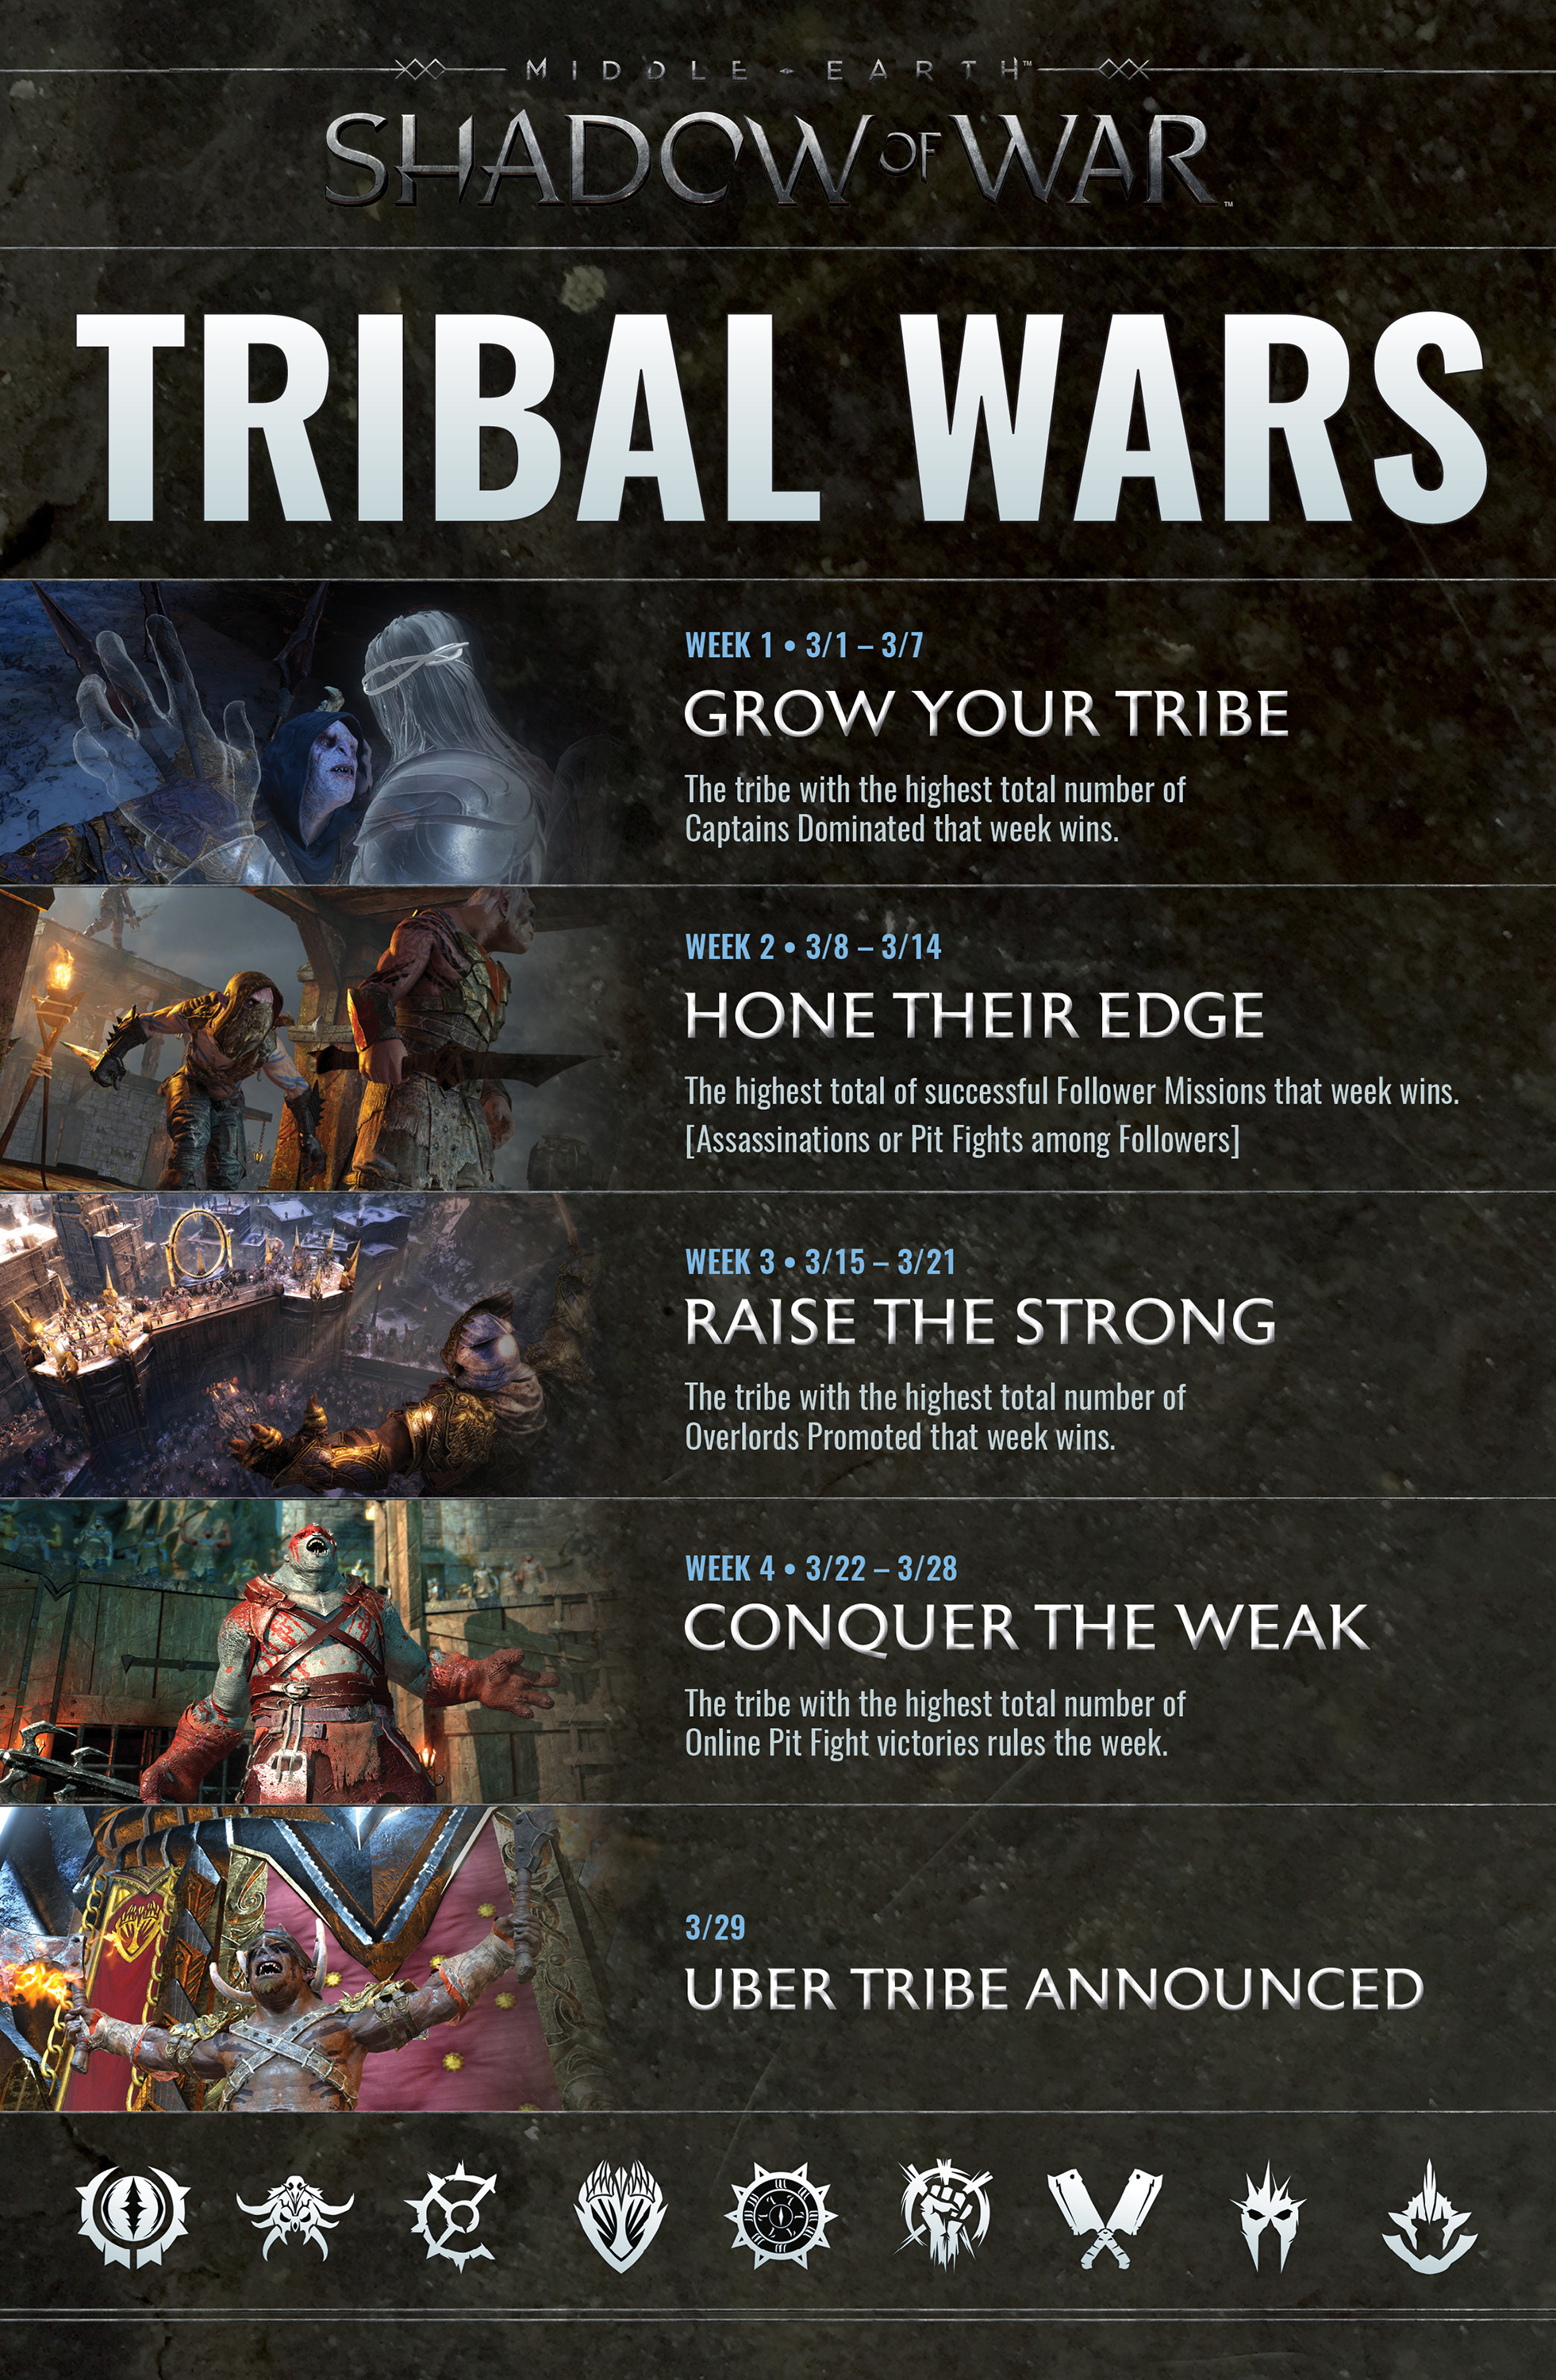 Mar 8, 2018 Make Your Tribe Stronger - Tribal Wars Week 2